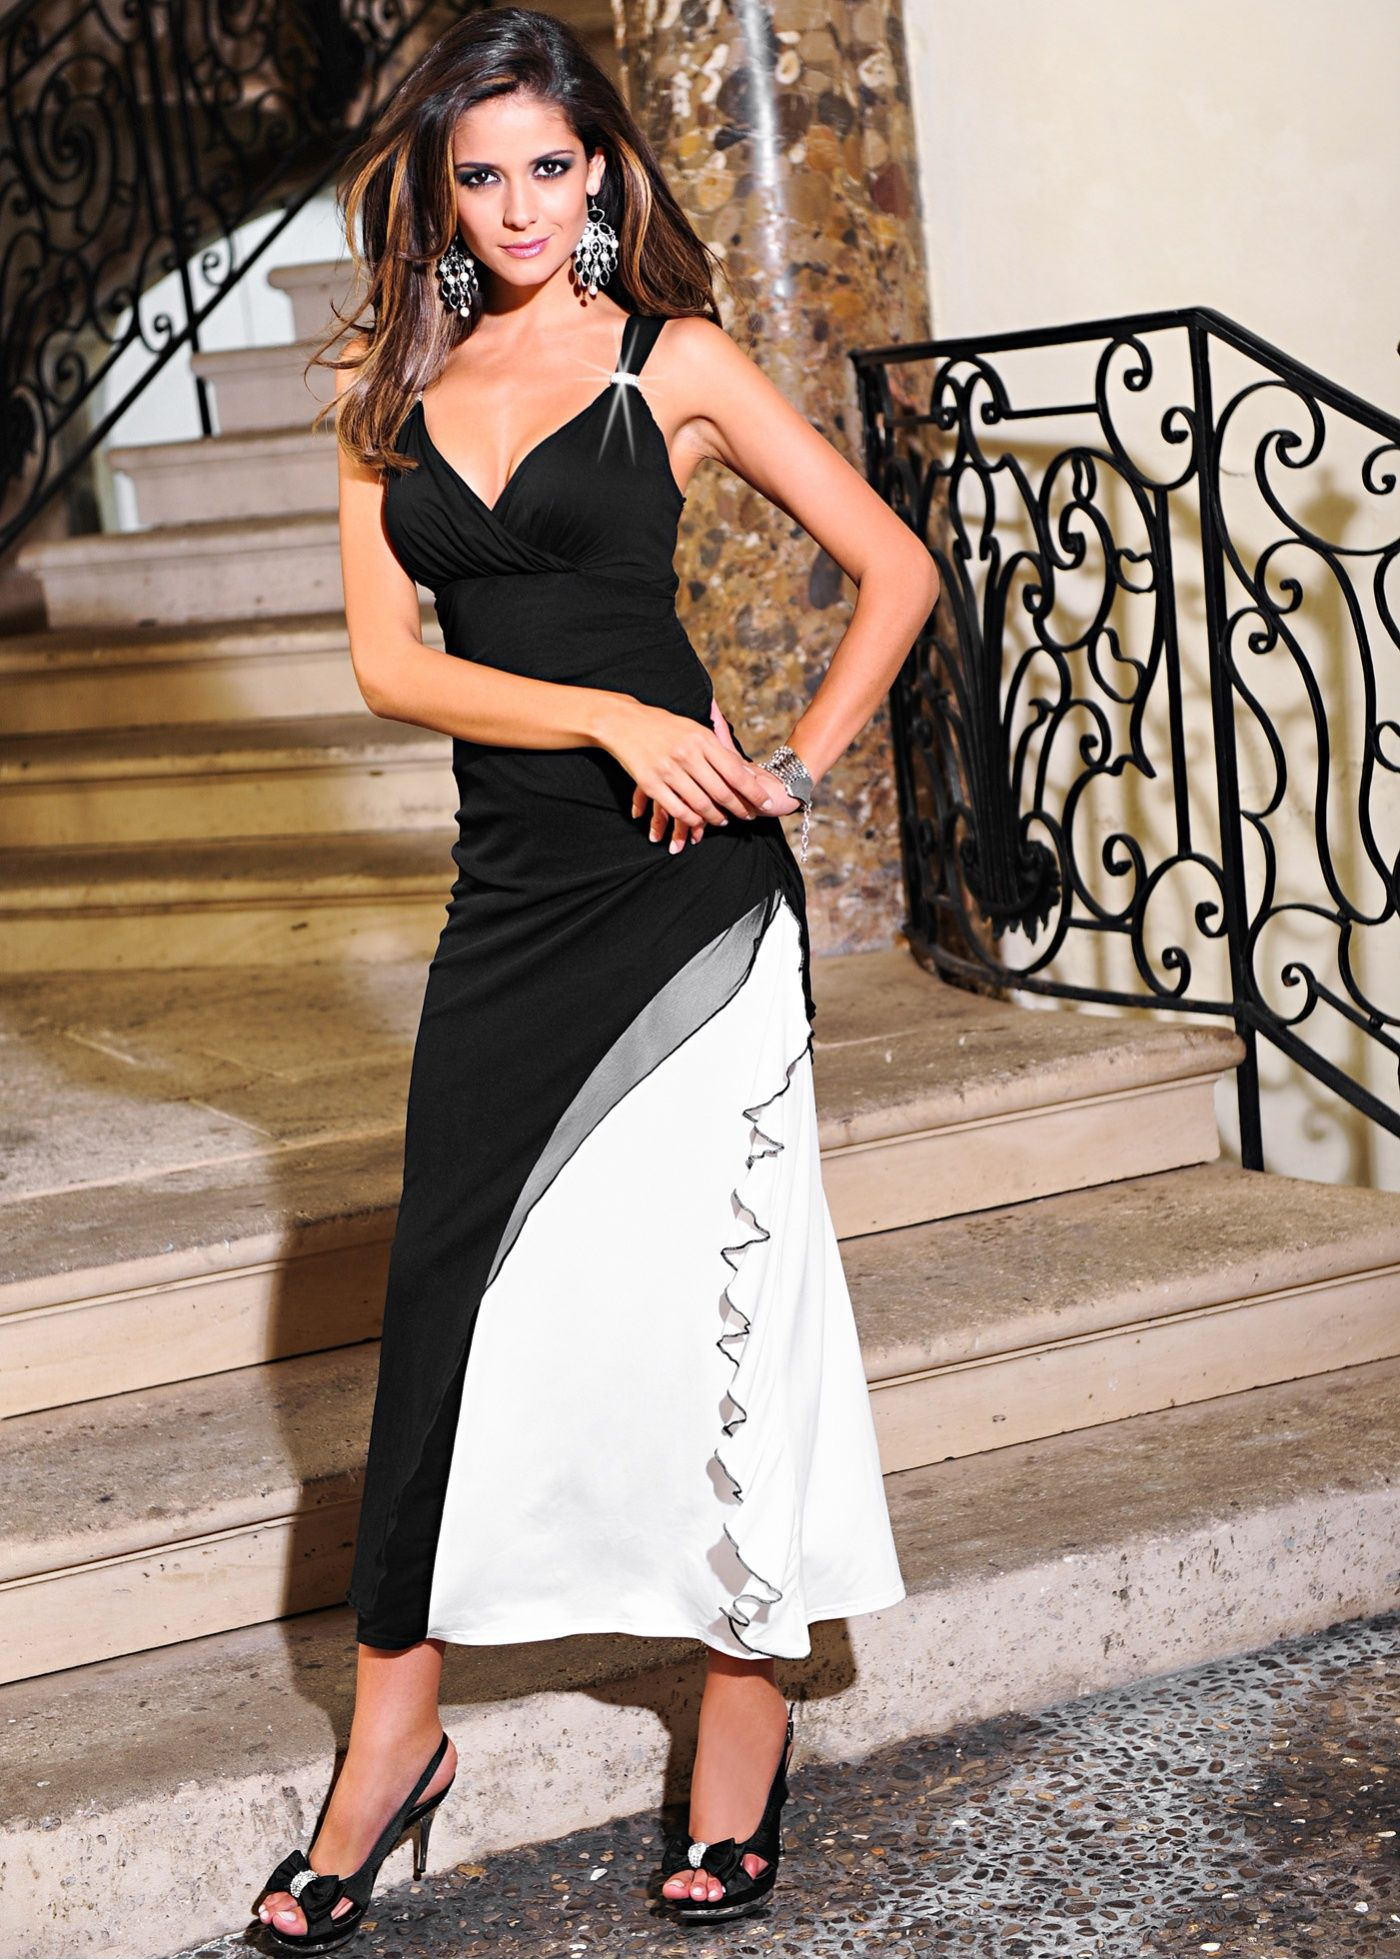 88af8b44cec0 bonprix - Sophisticated dress in a double-layered look - carla ossa ...